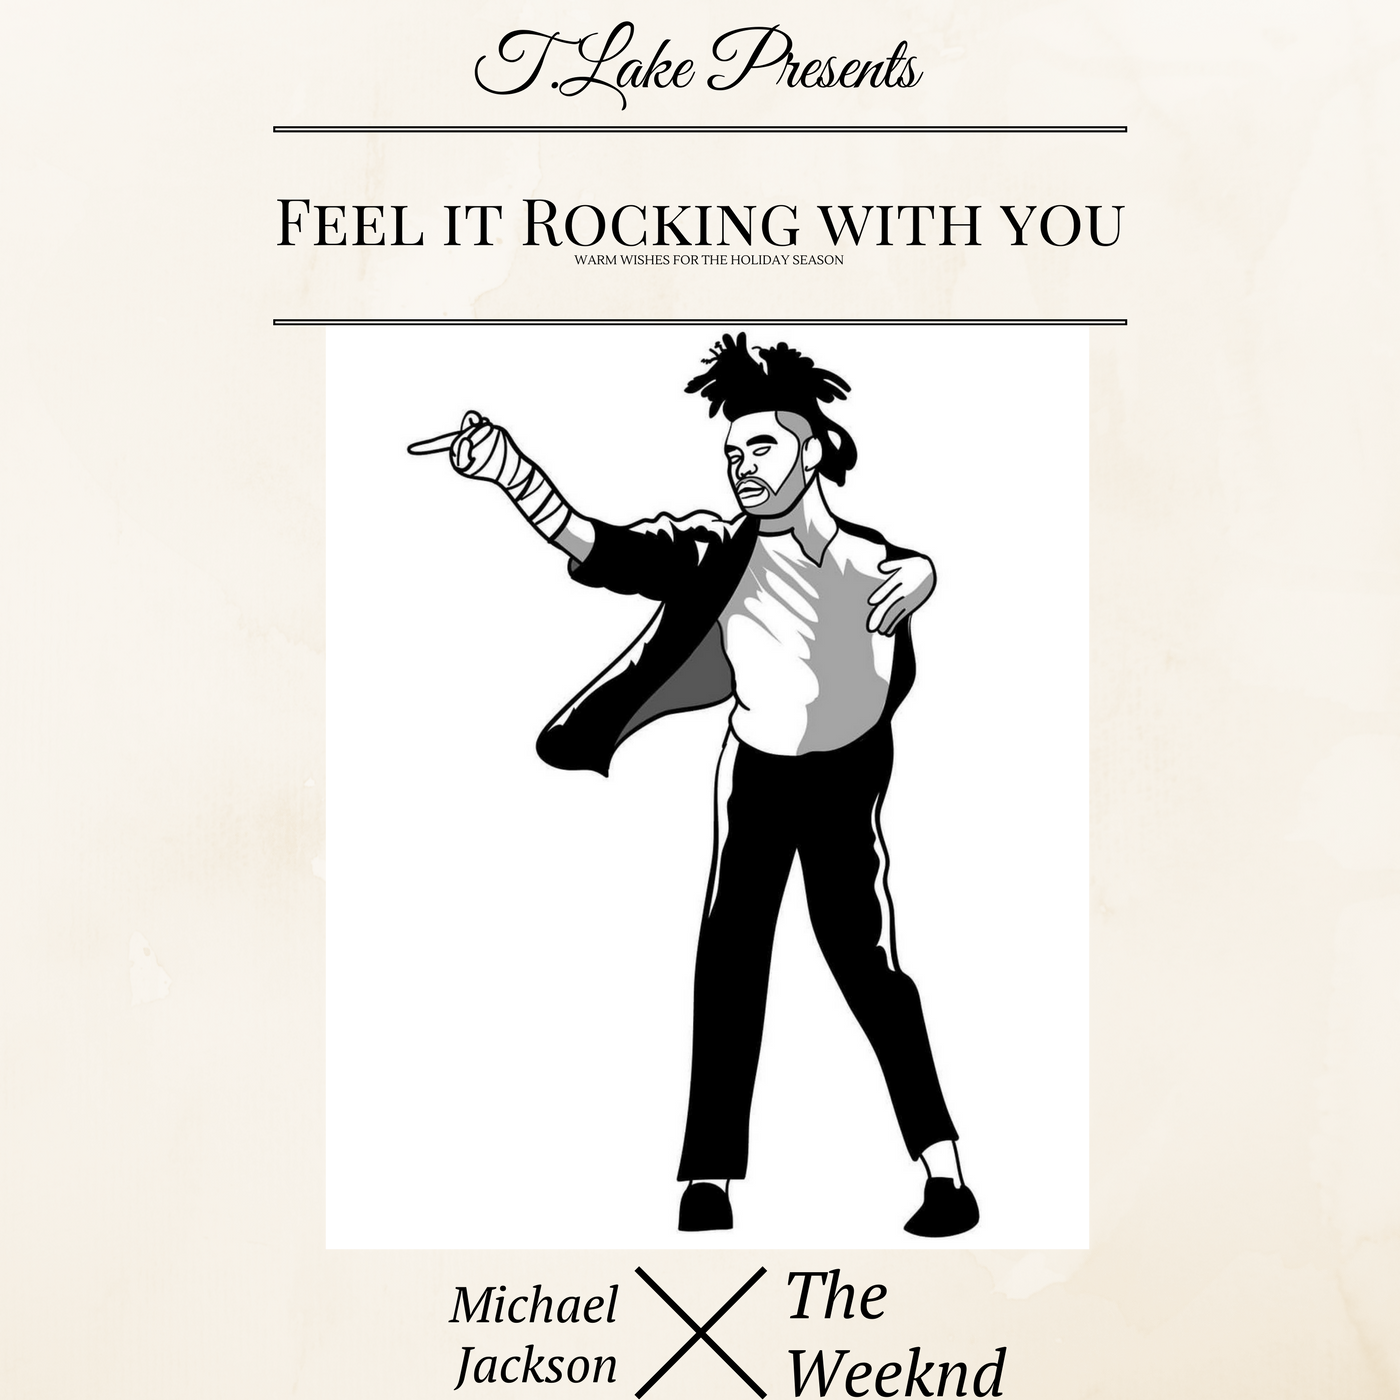 The Weeknd x Michael Jackson - Feel It Rocking with You (T.Lake Mashup)